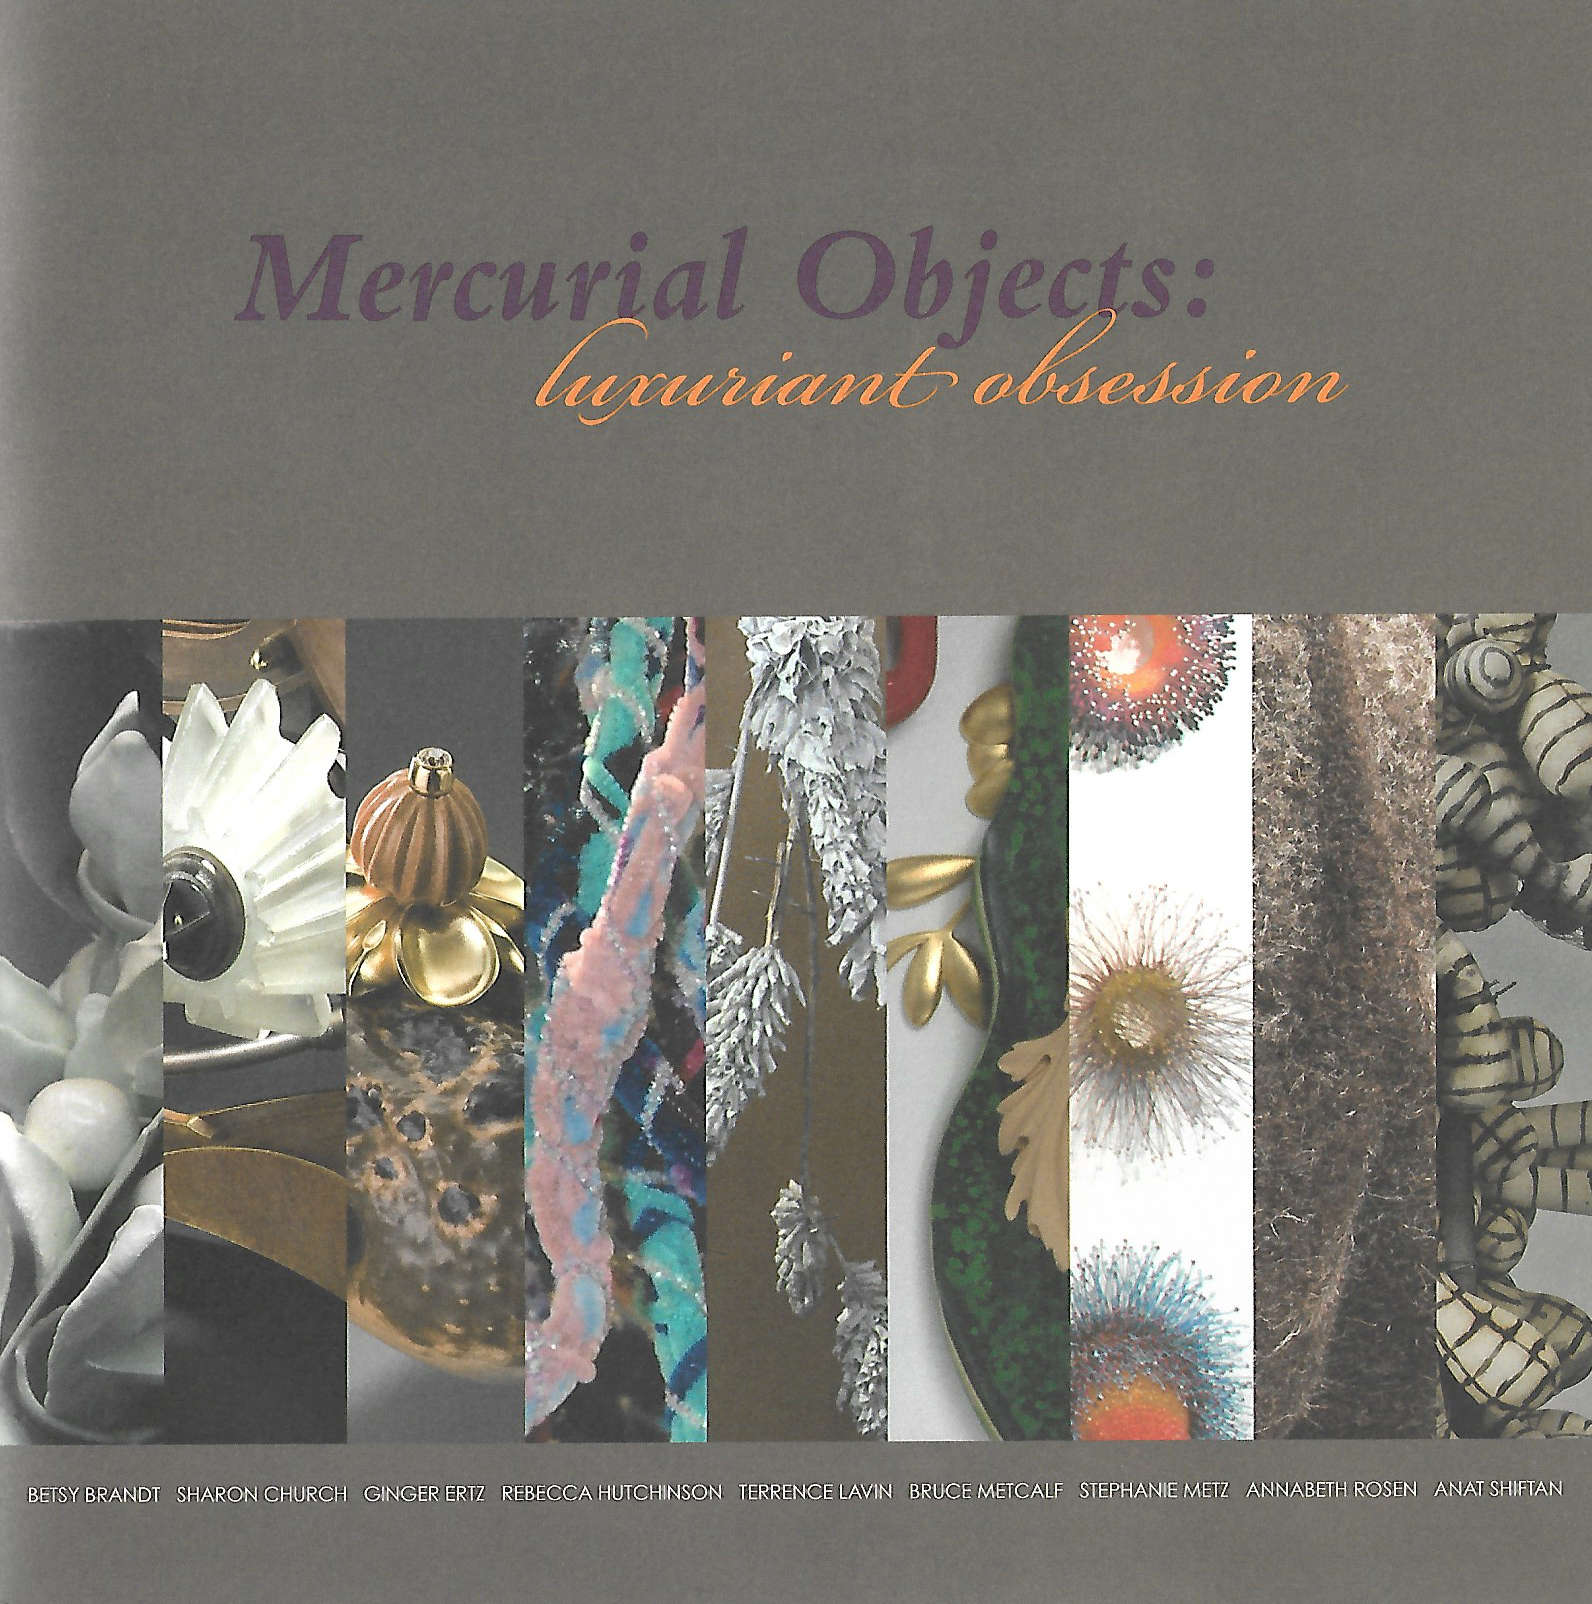 Mercurial Objects